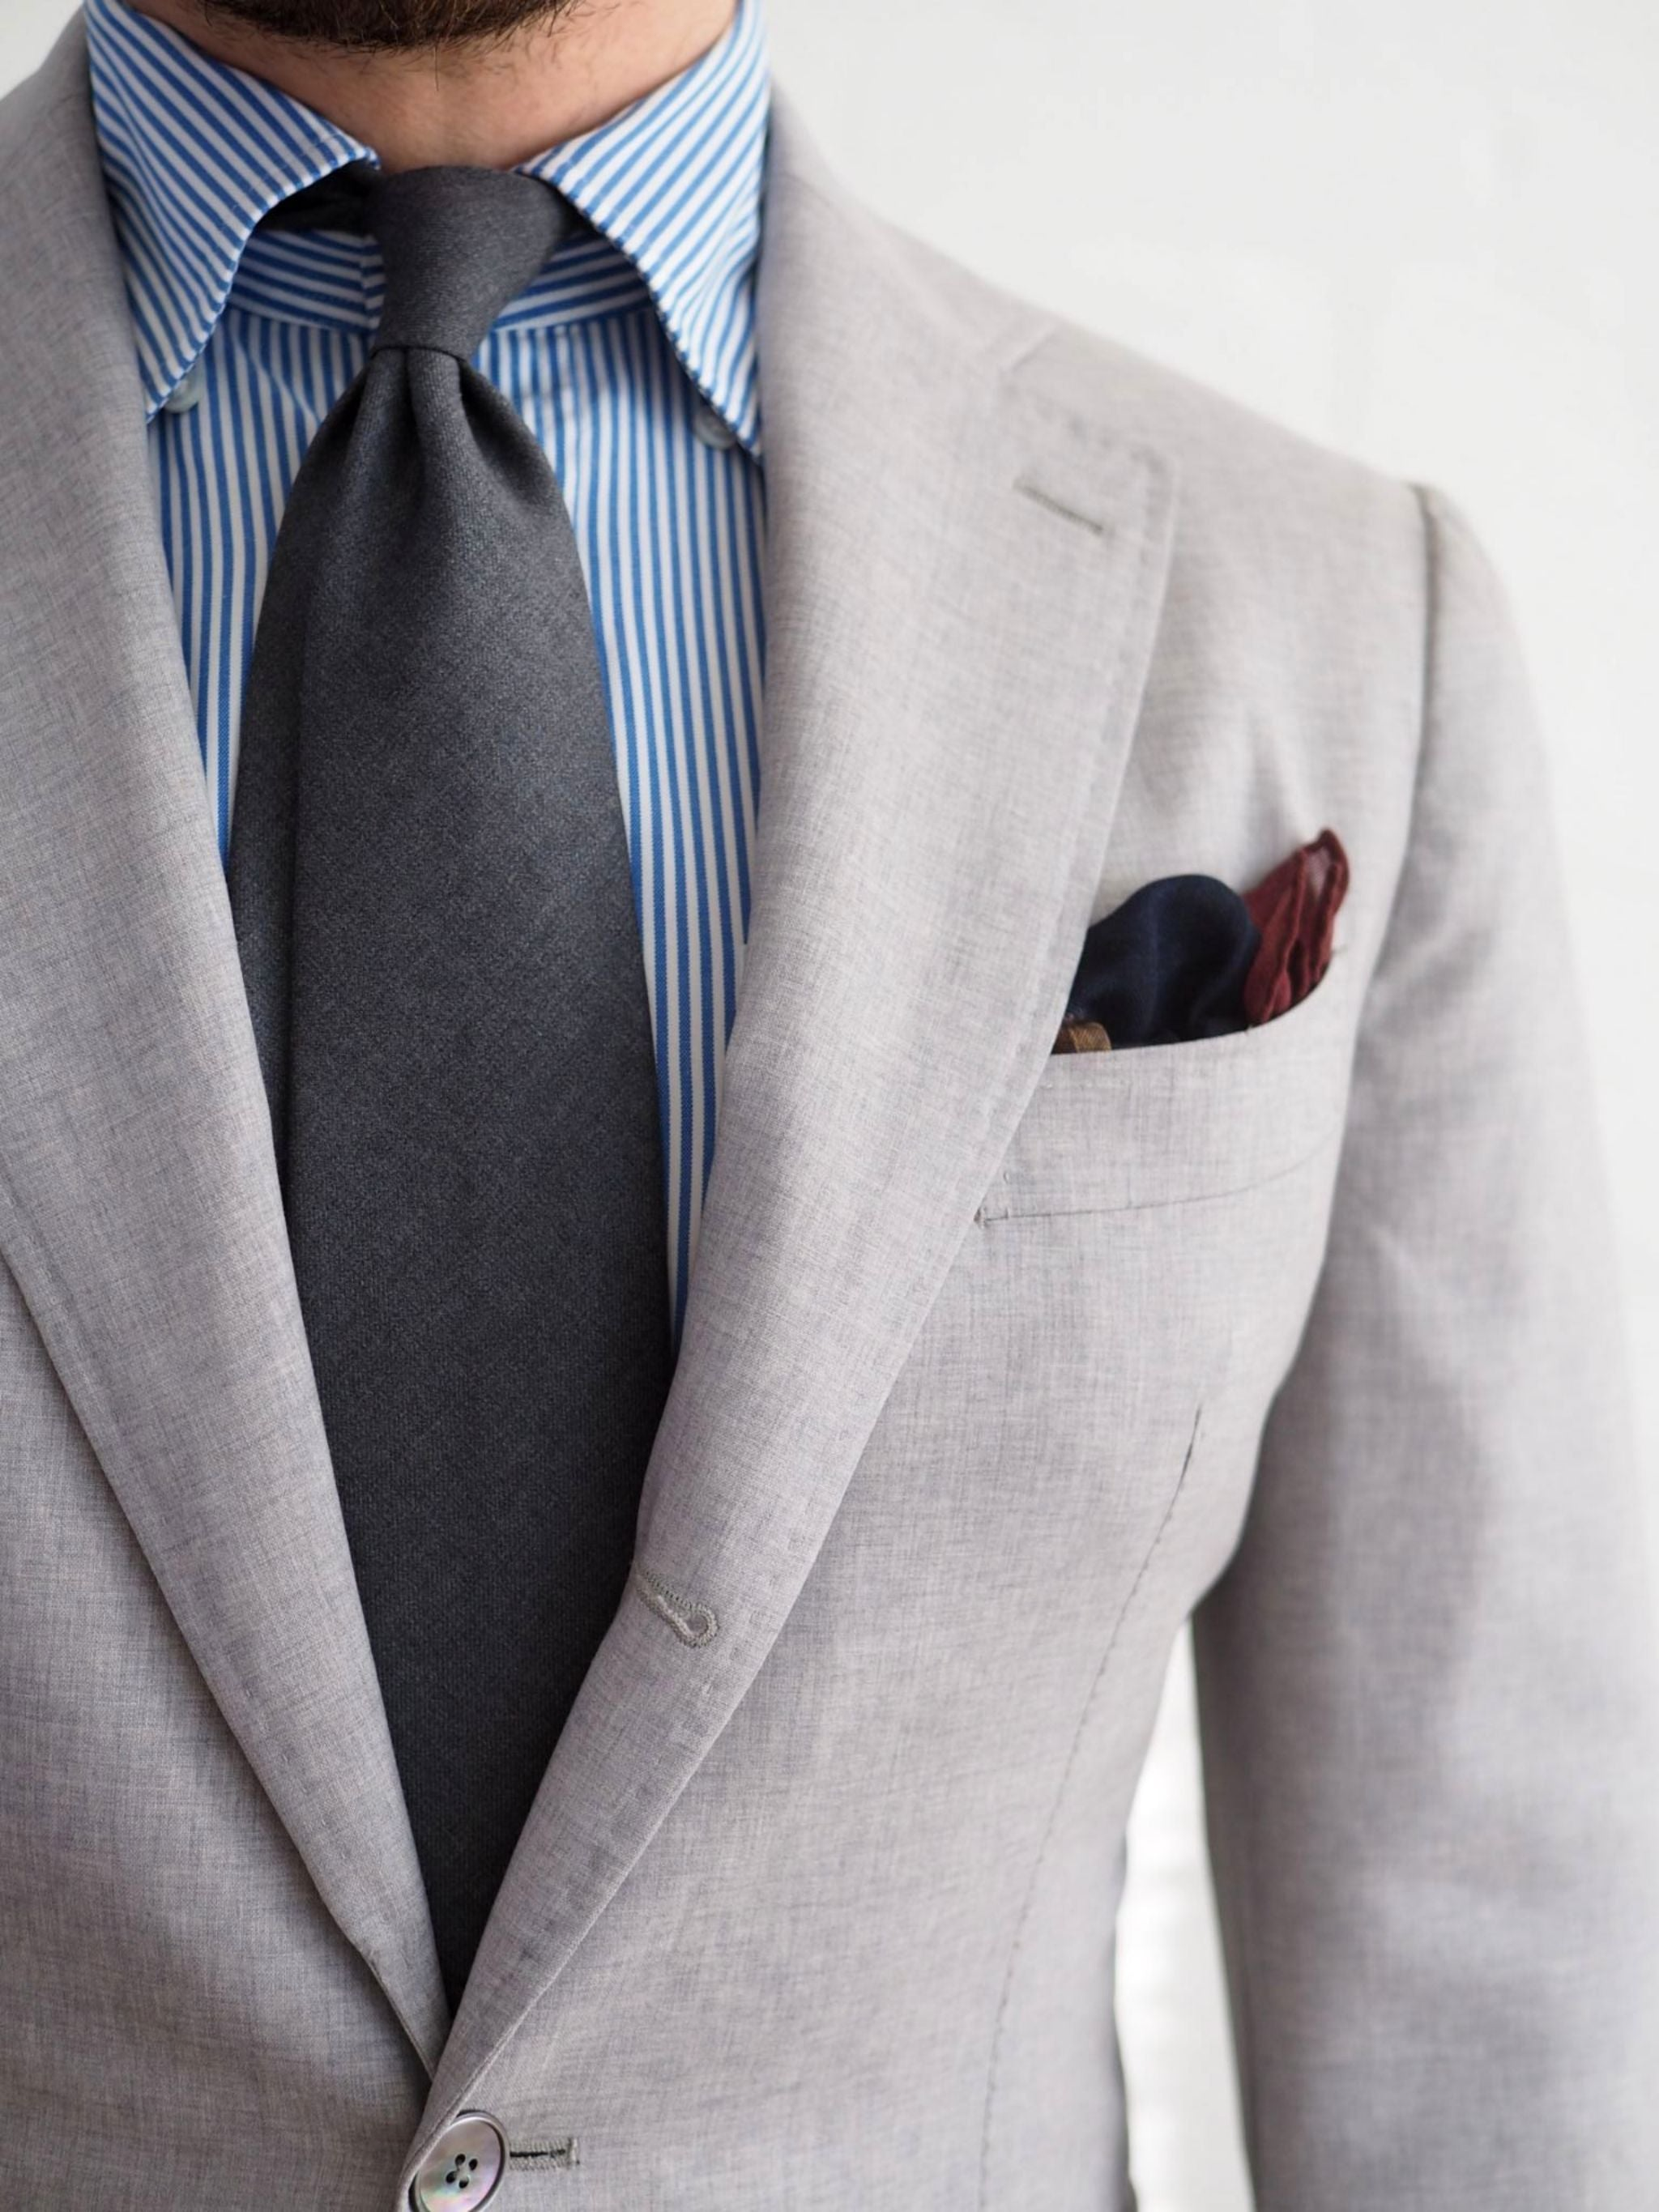 Favorite suits - Gray lightweight wool suit with button-down shirt and DLA gray wool tie